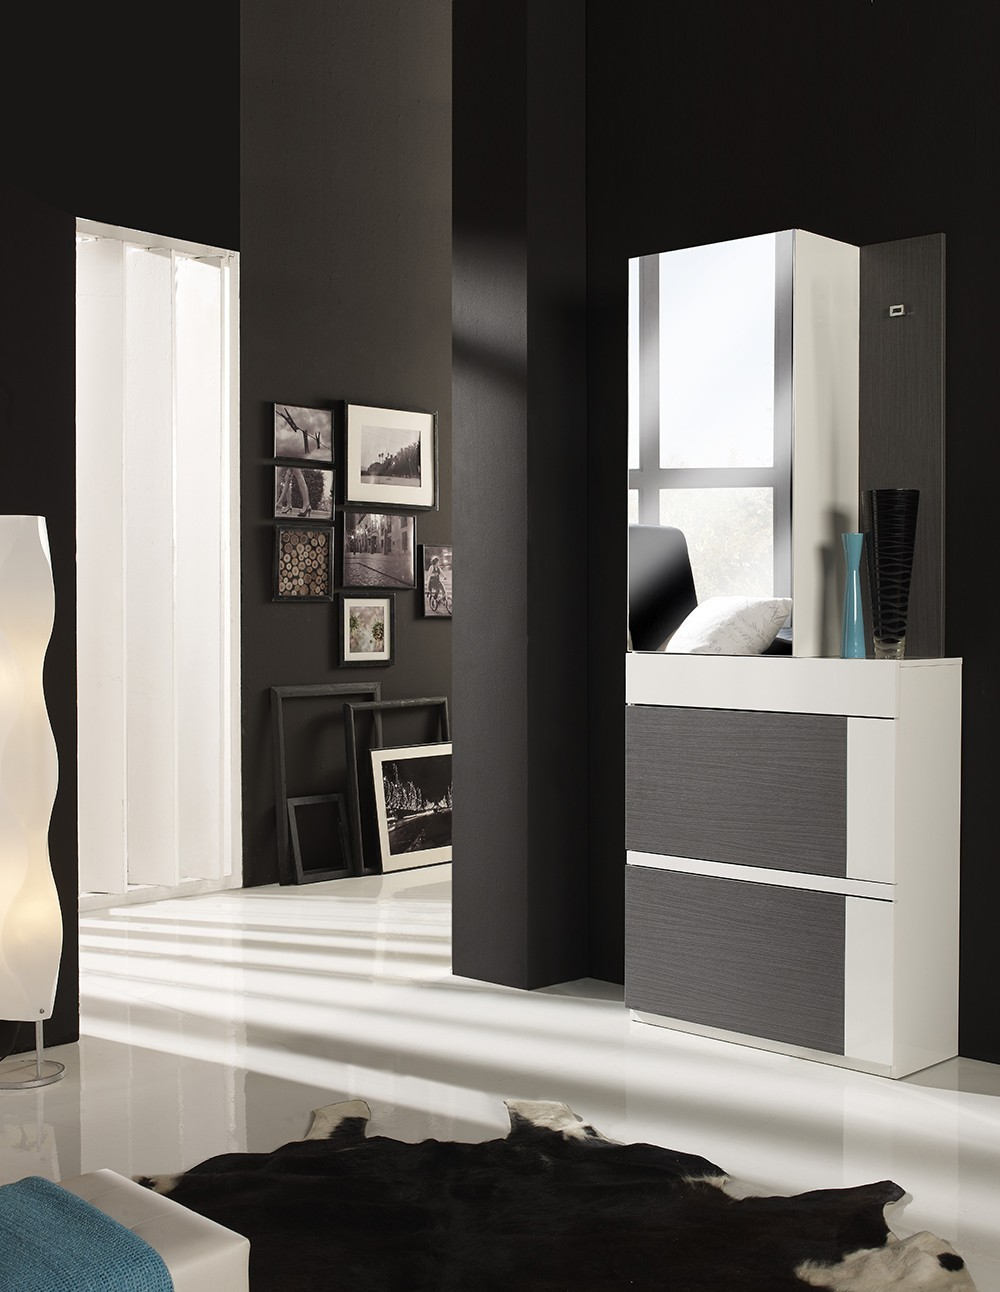 meuble entree moderne chaussures diego zd1 meu dentr. Black Bedroom Furniture Sets. Home Design Ideas